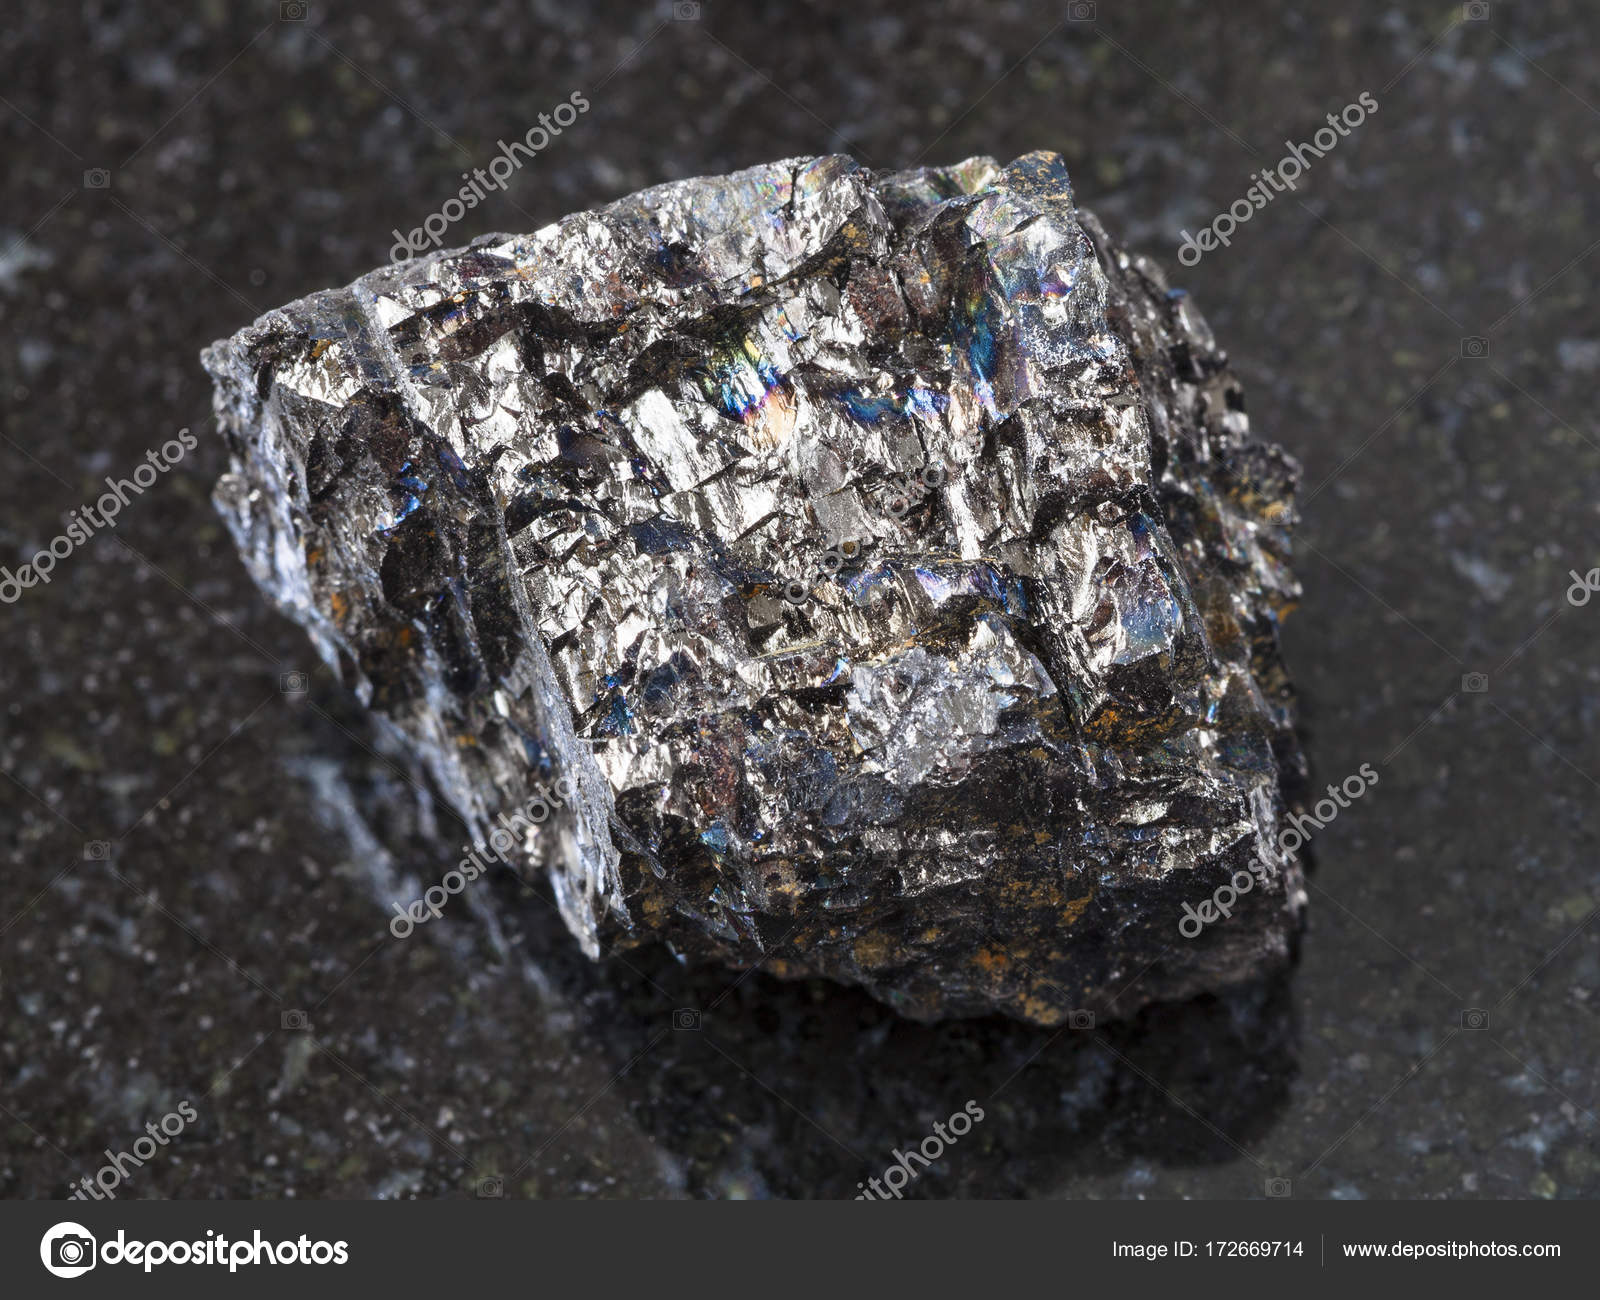 diamond soon product coal back developement slag under come